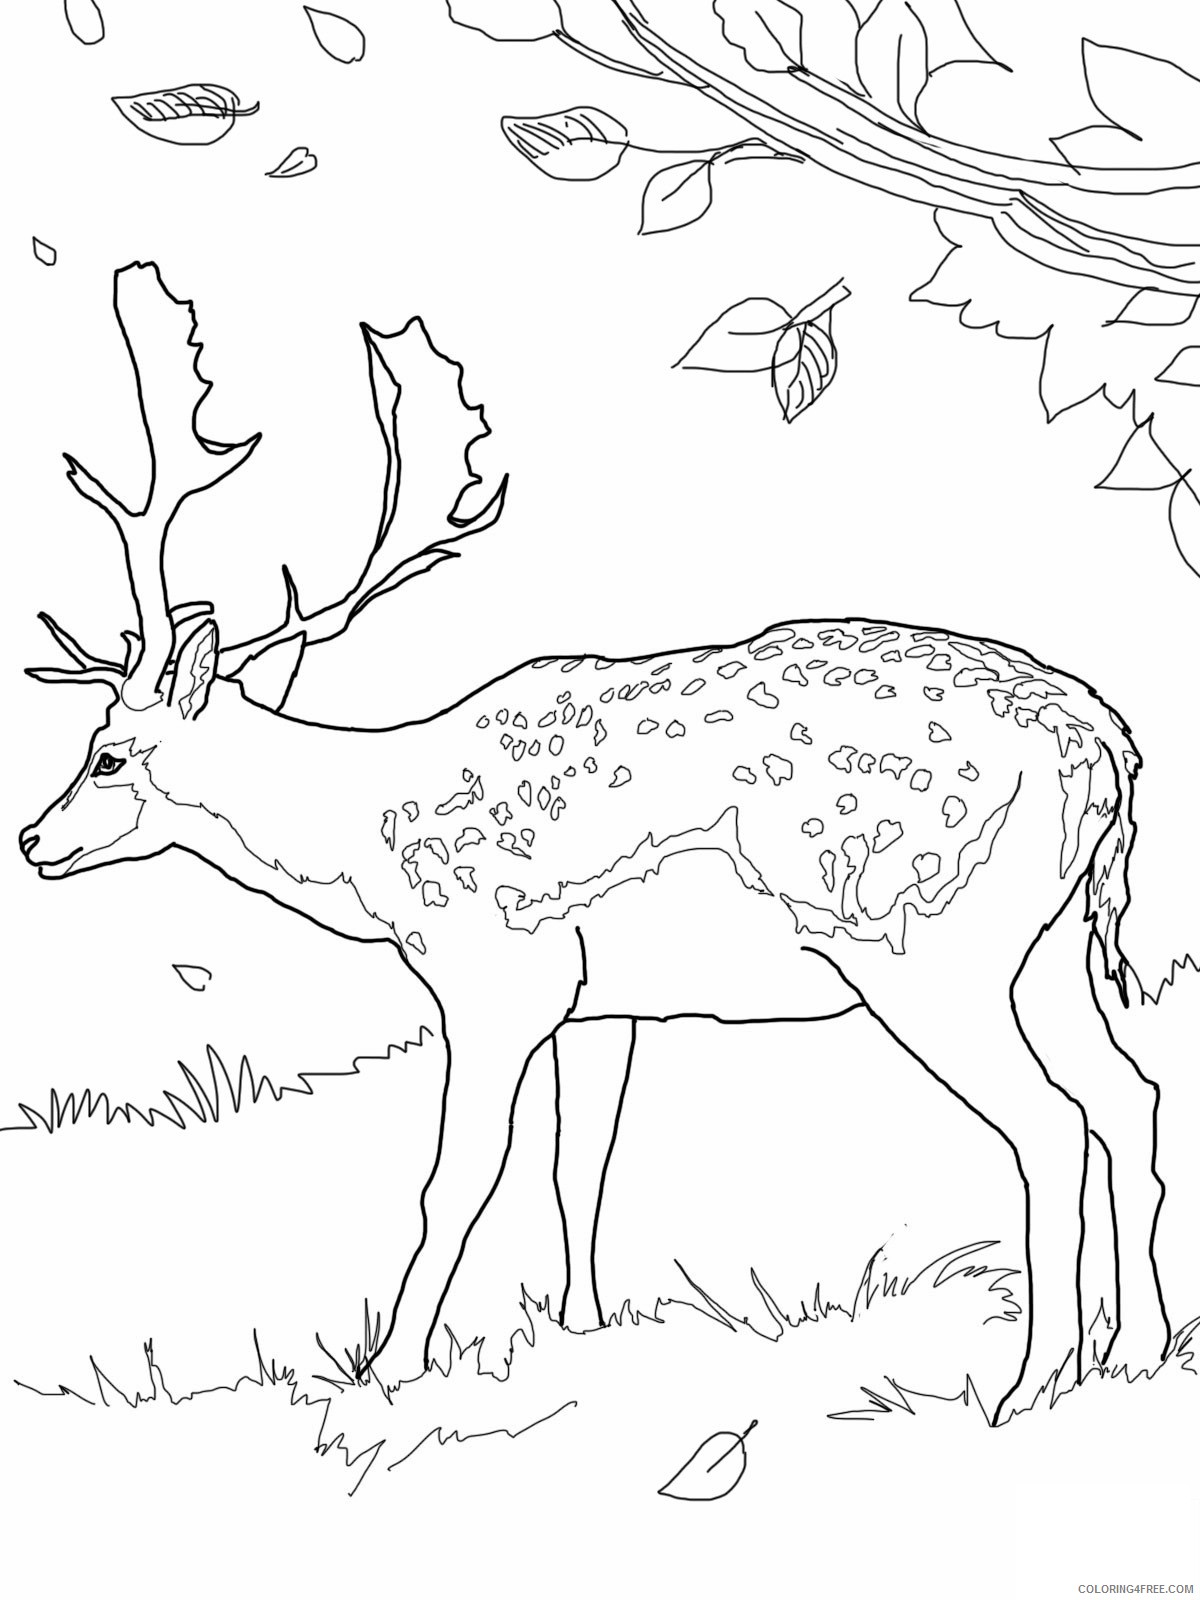 male deer coloring pages Coloring4free